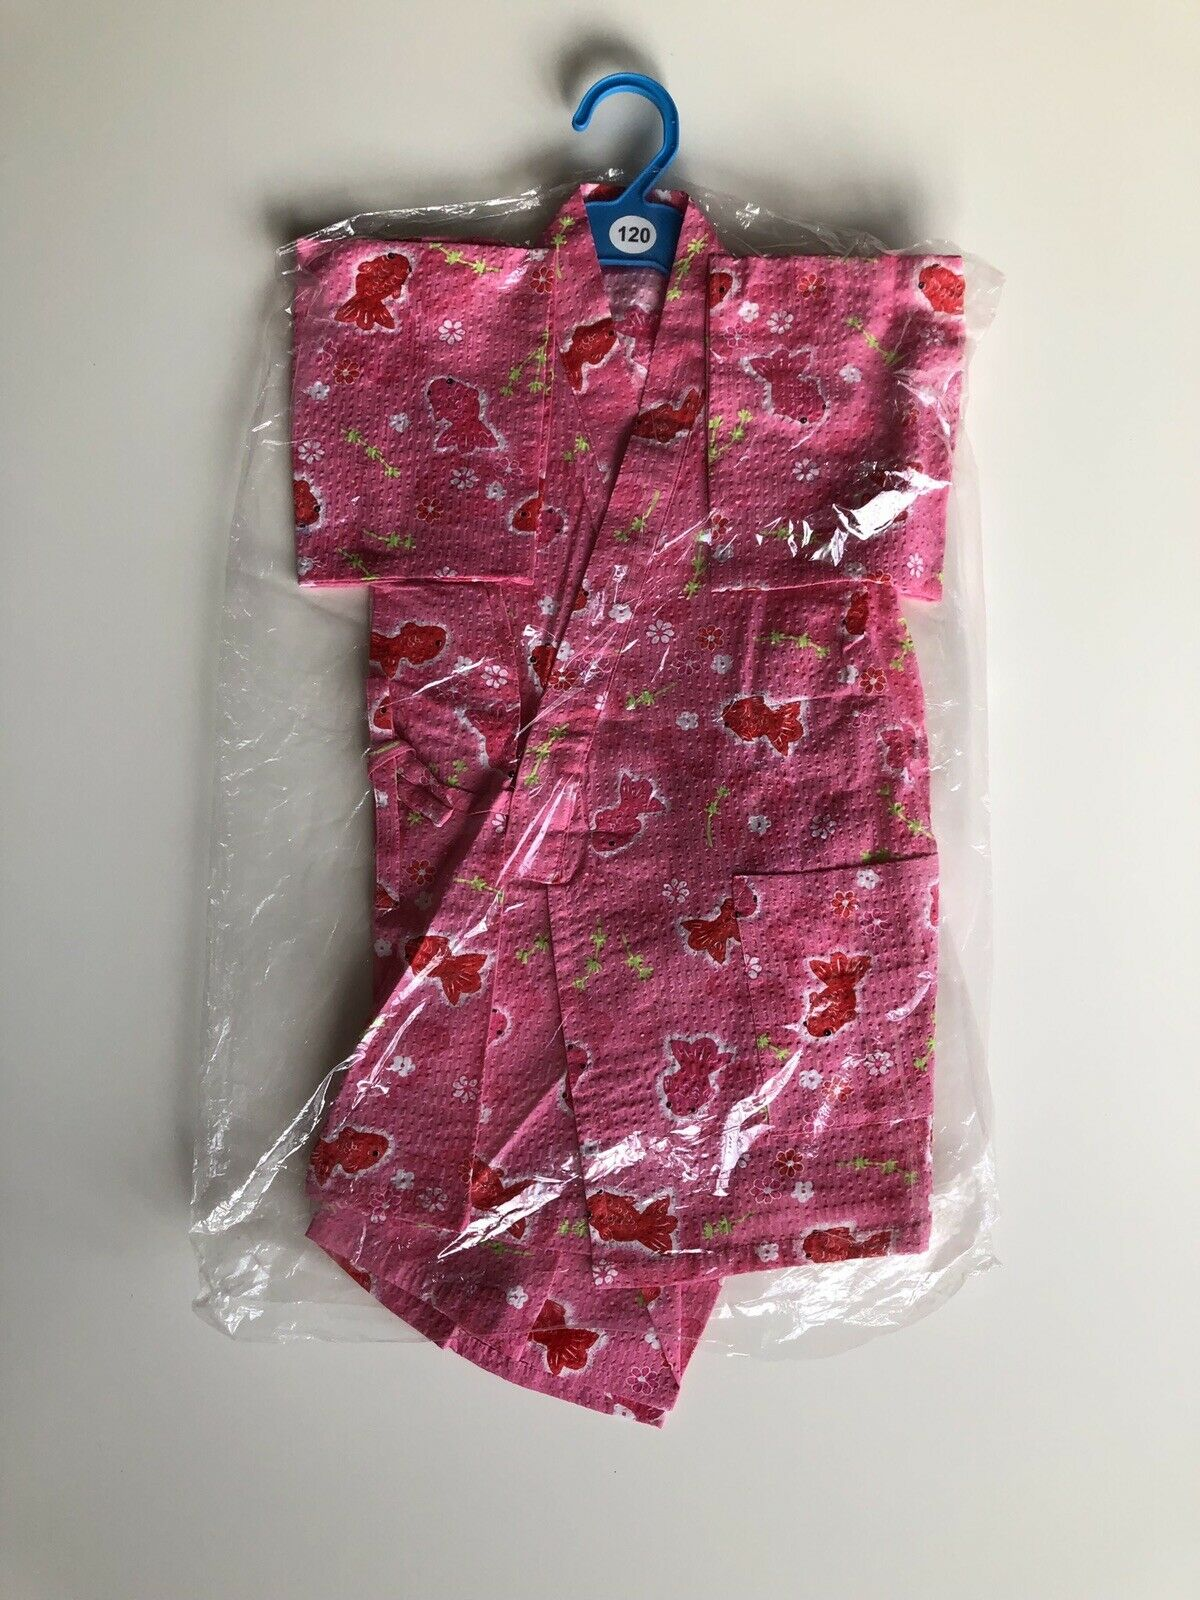 Japanese Kimono Wrap Top & Shorts For Kids 3-4 Years Old pink Cosplay UK Seller